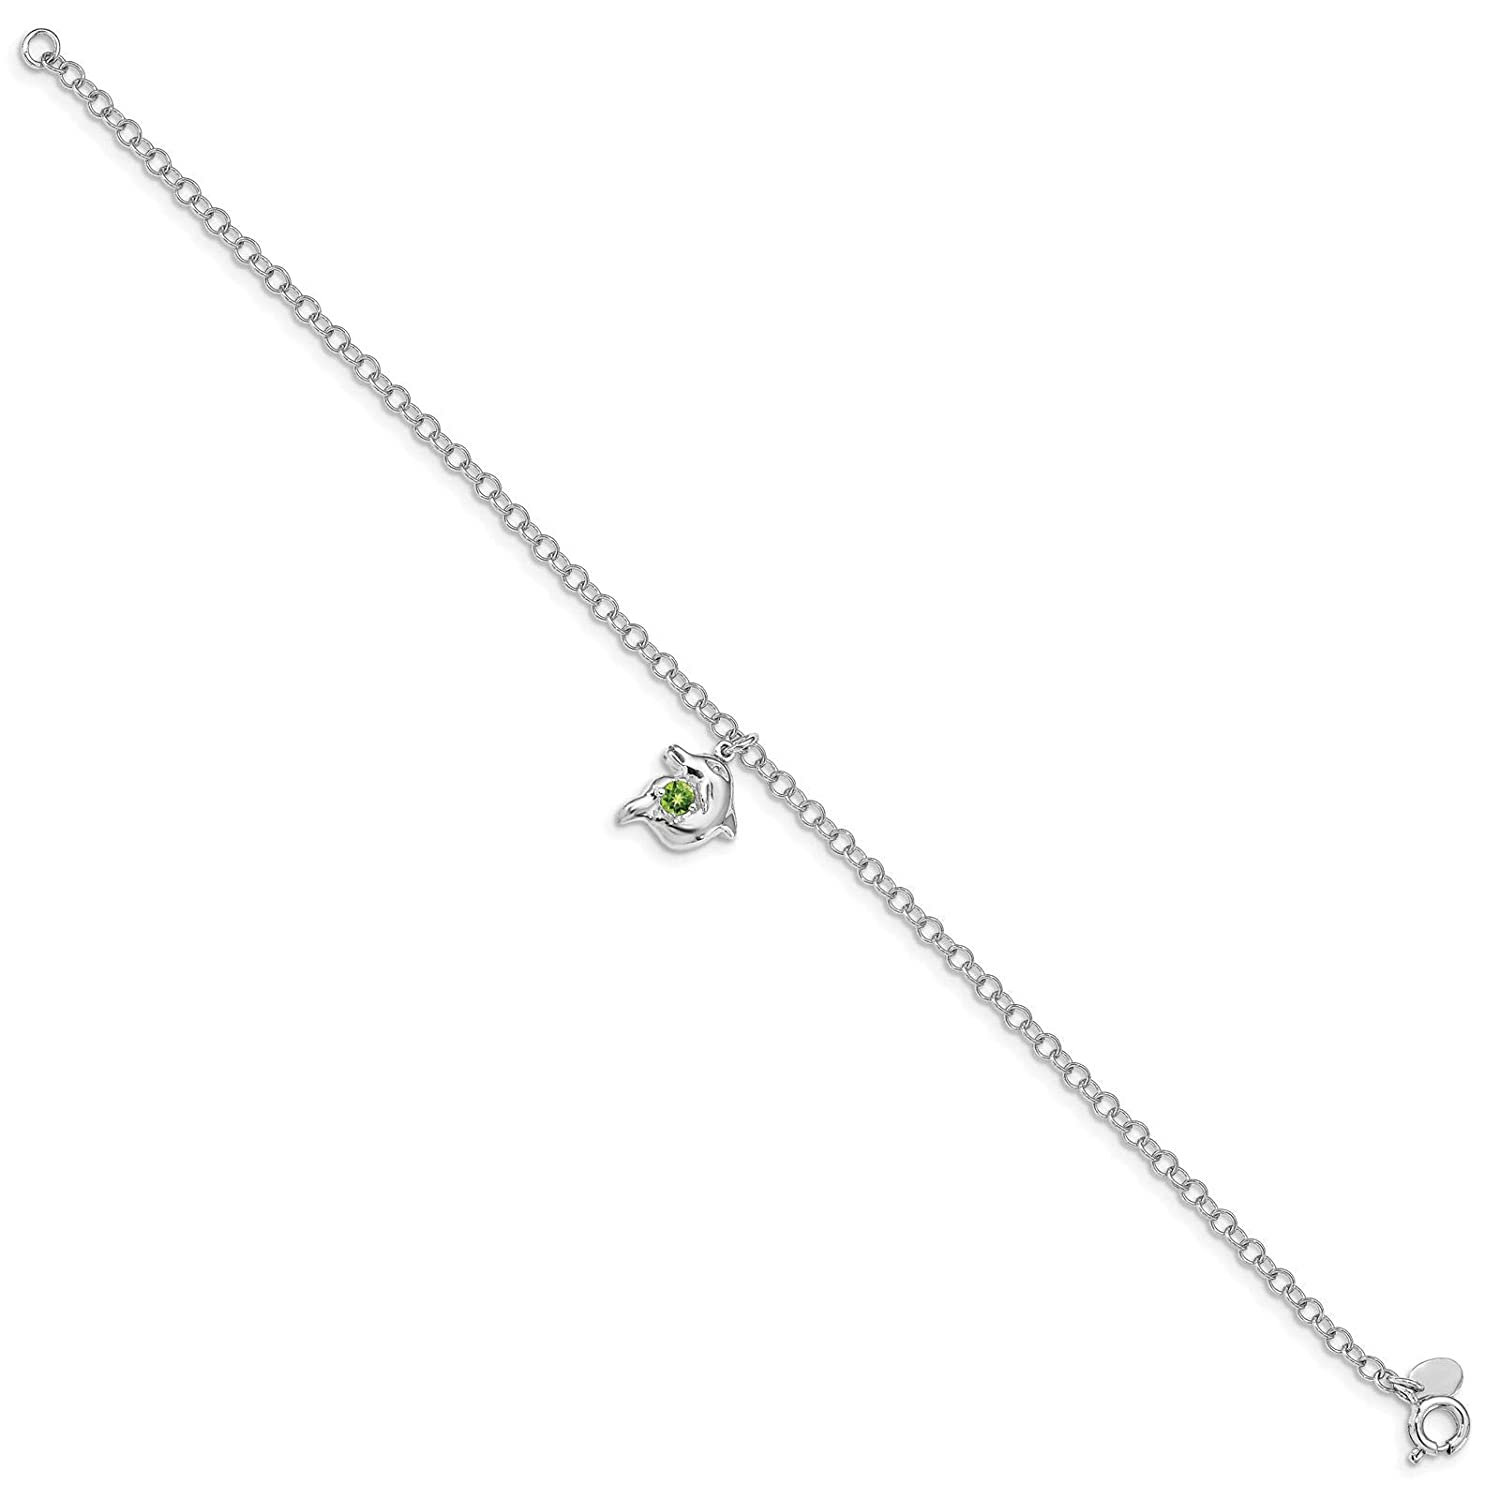 925 Sterling Silver Polished Jumping Dolphin w//Peridot August Stone Link Bracelet 7.5